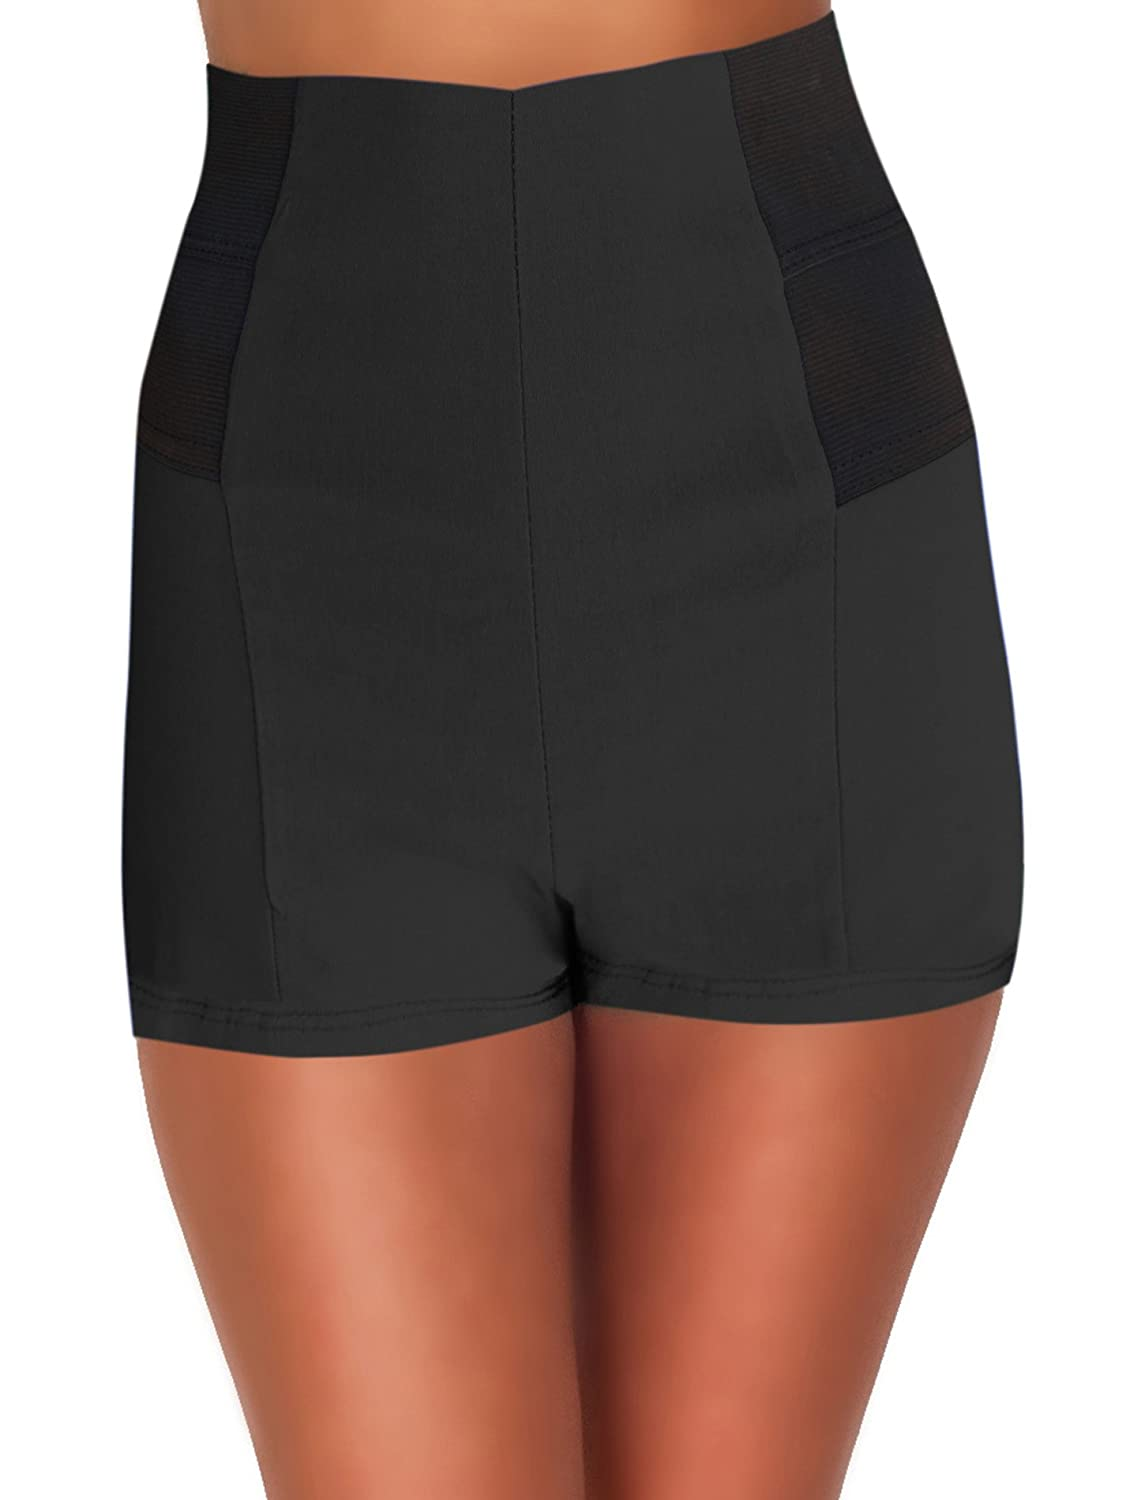 High Waisted Sophisticated Trendy Chic Front Button Vintage Inspired Shorts Hot From Hollywood 5724-SHRTS-R3